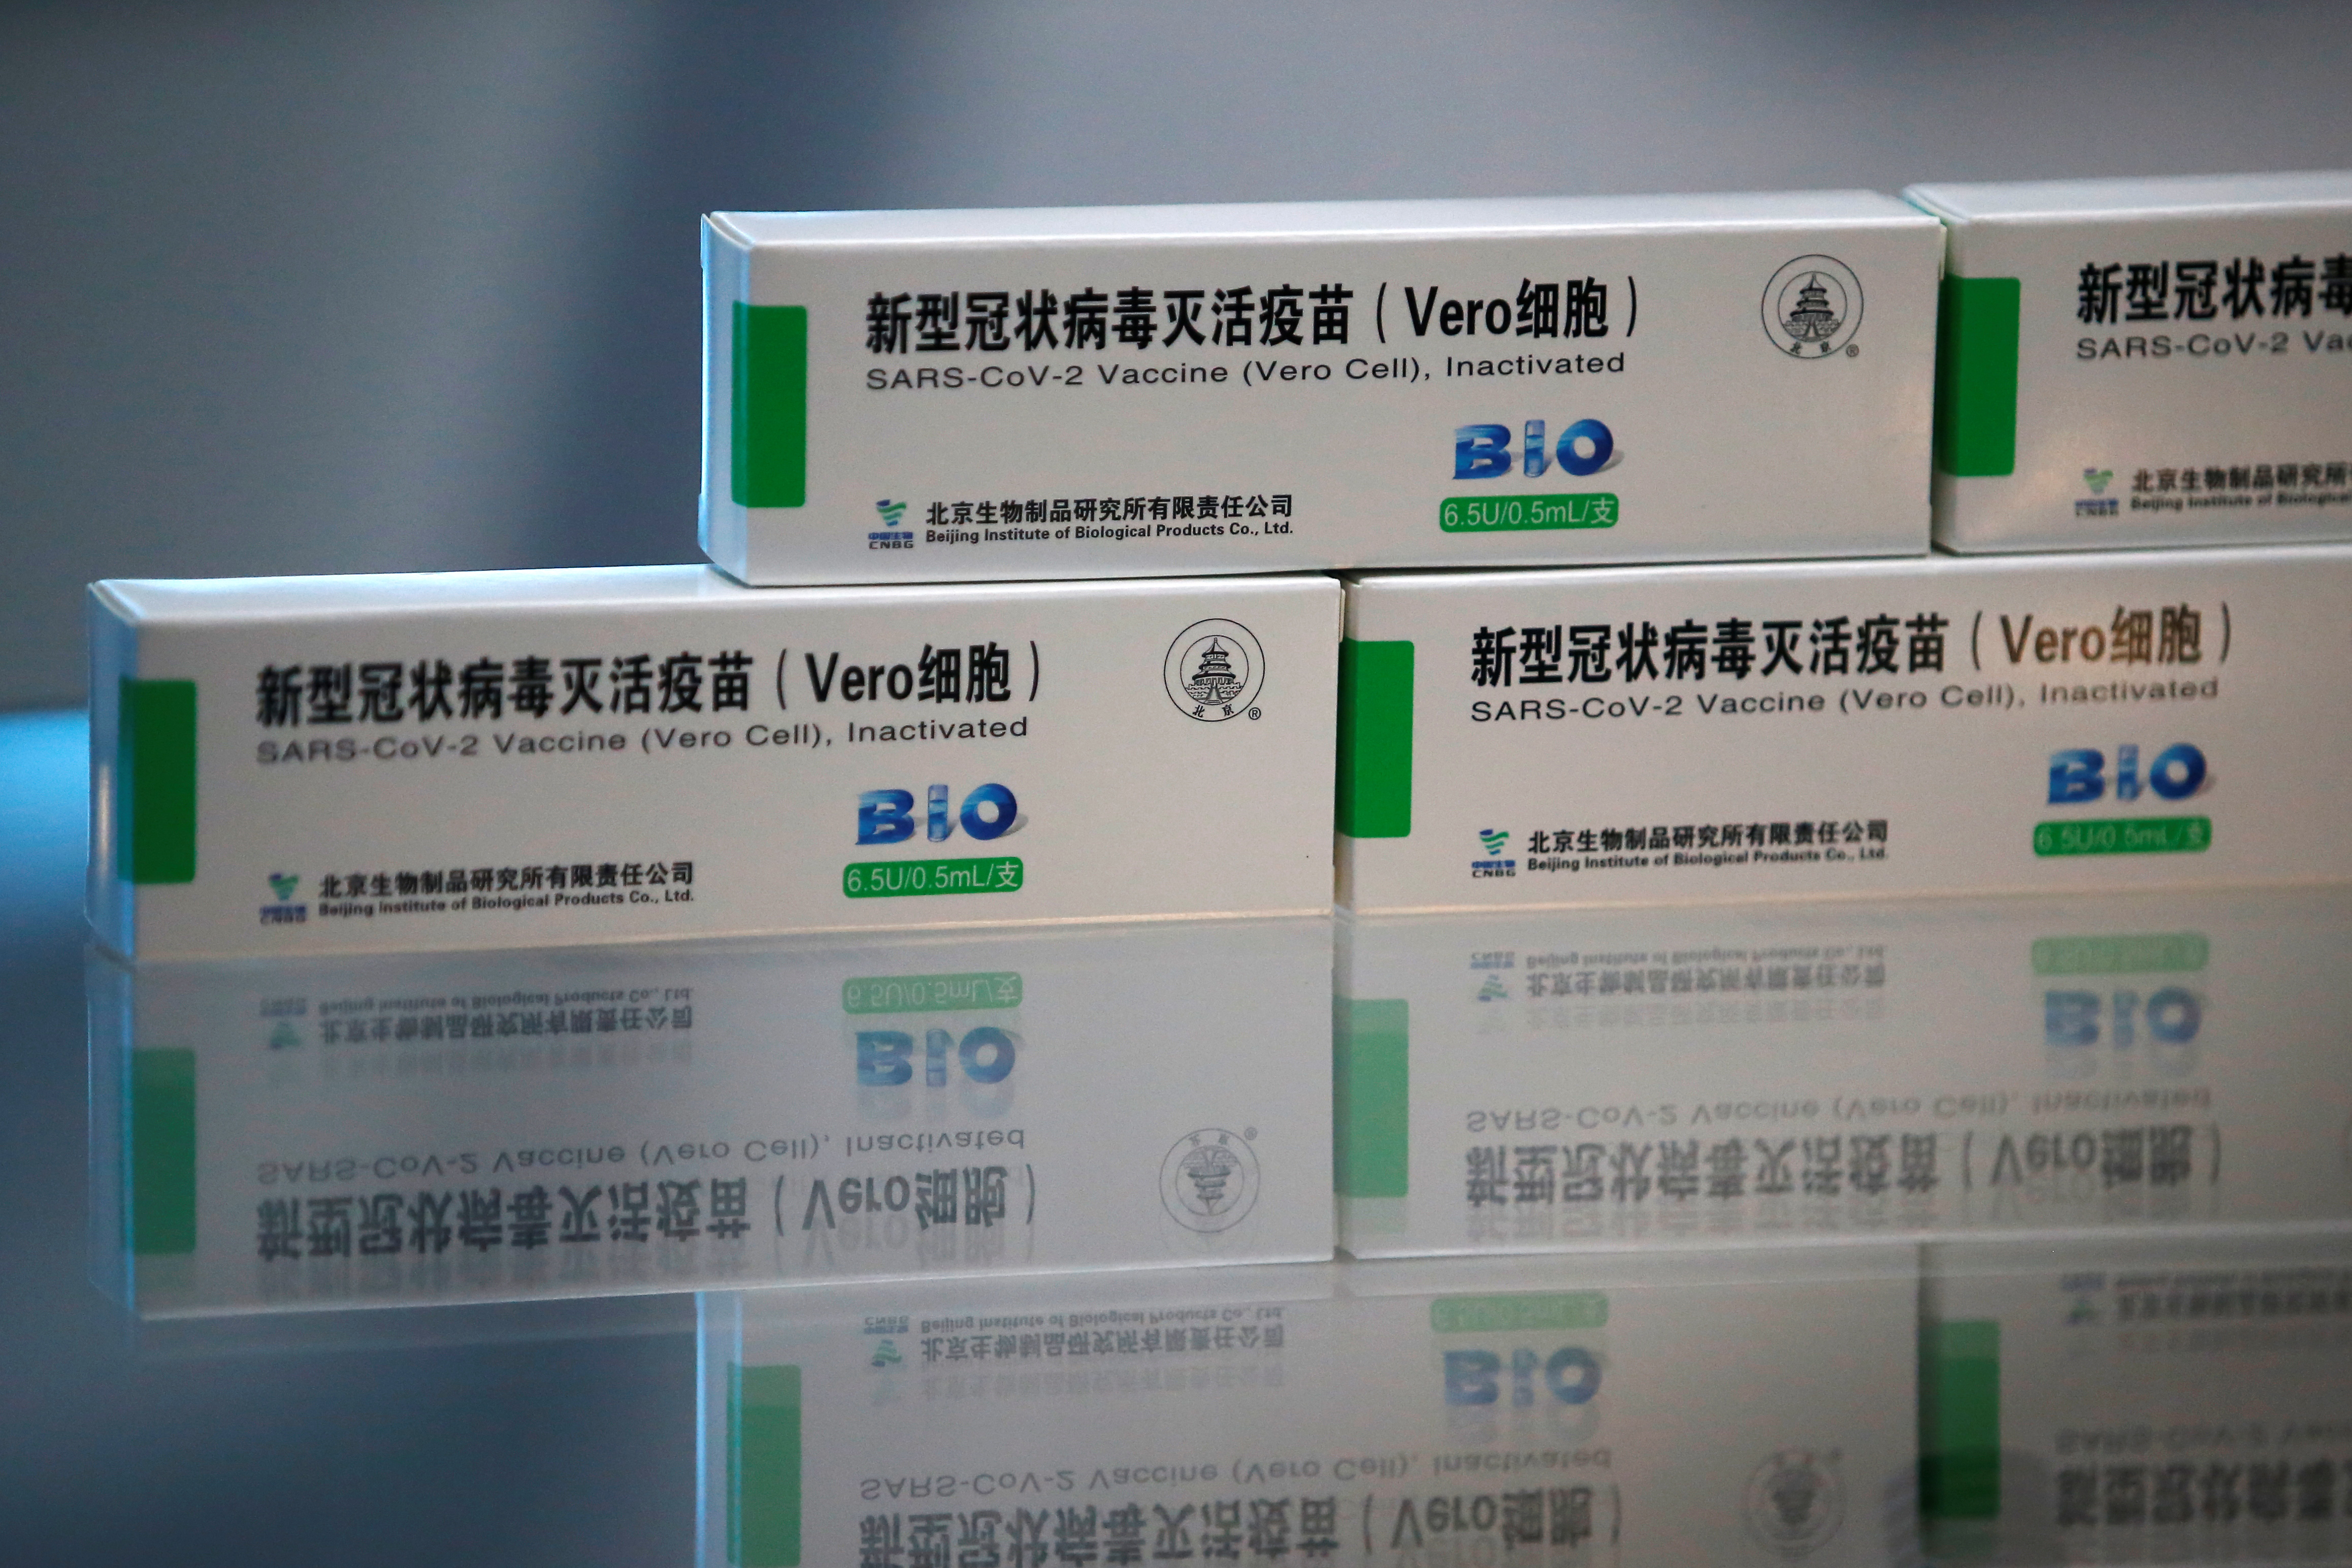 Packages of COVID-19 vaccines by Beijing Institute of Biological Products of Sinopharm